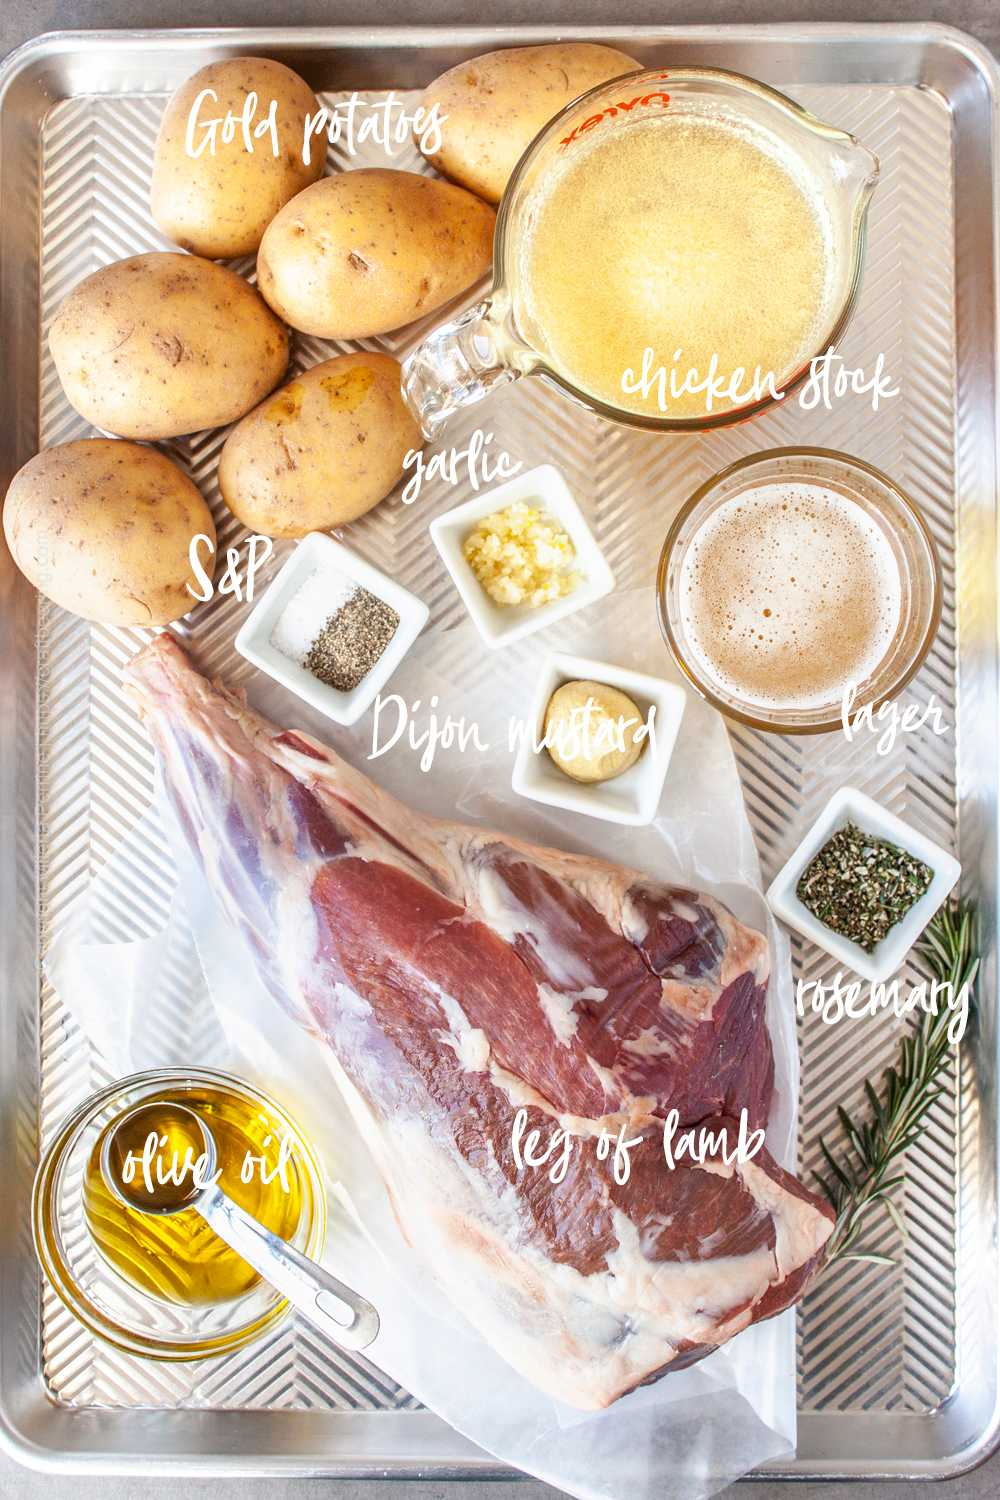 Ingredients for slow cooked leg of lamb in oven with Dijon mustard marinade